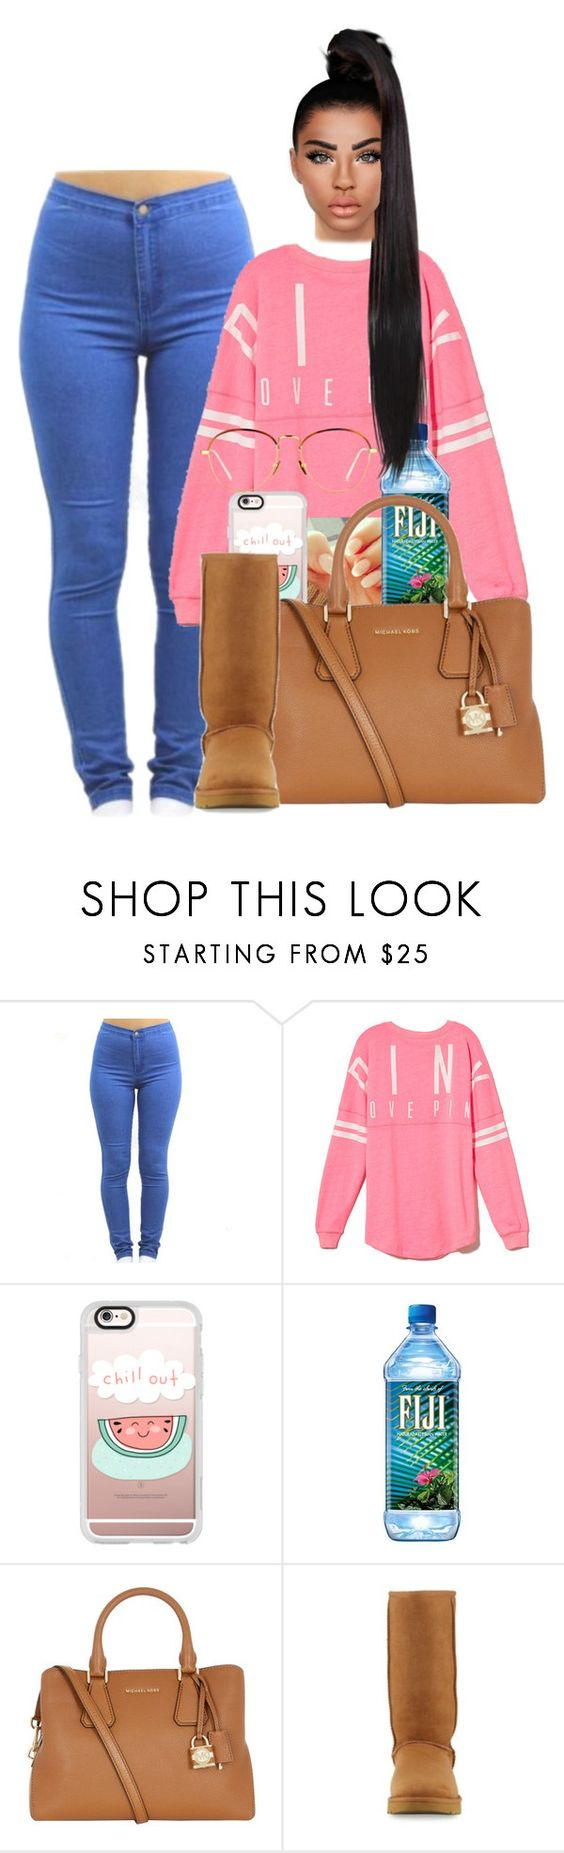 """Untitled #1530"" by melaninprincess-16 ❤ liked on Polyvore featuring Victoria's Secret PINK, Casetify, MICHAEL Michael Kors, UGG and Linda Farrow"